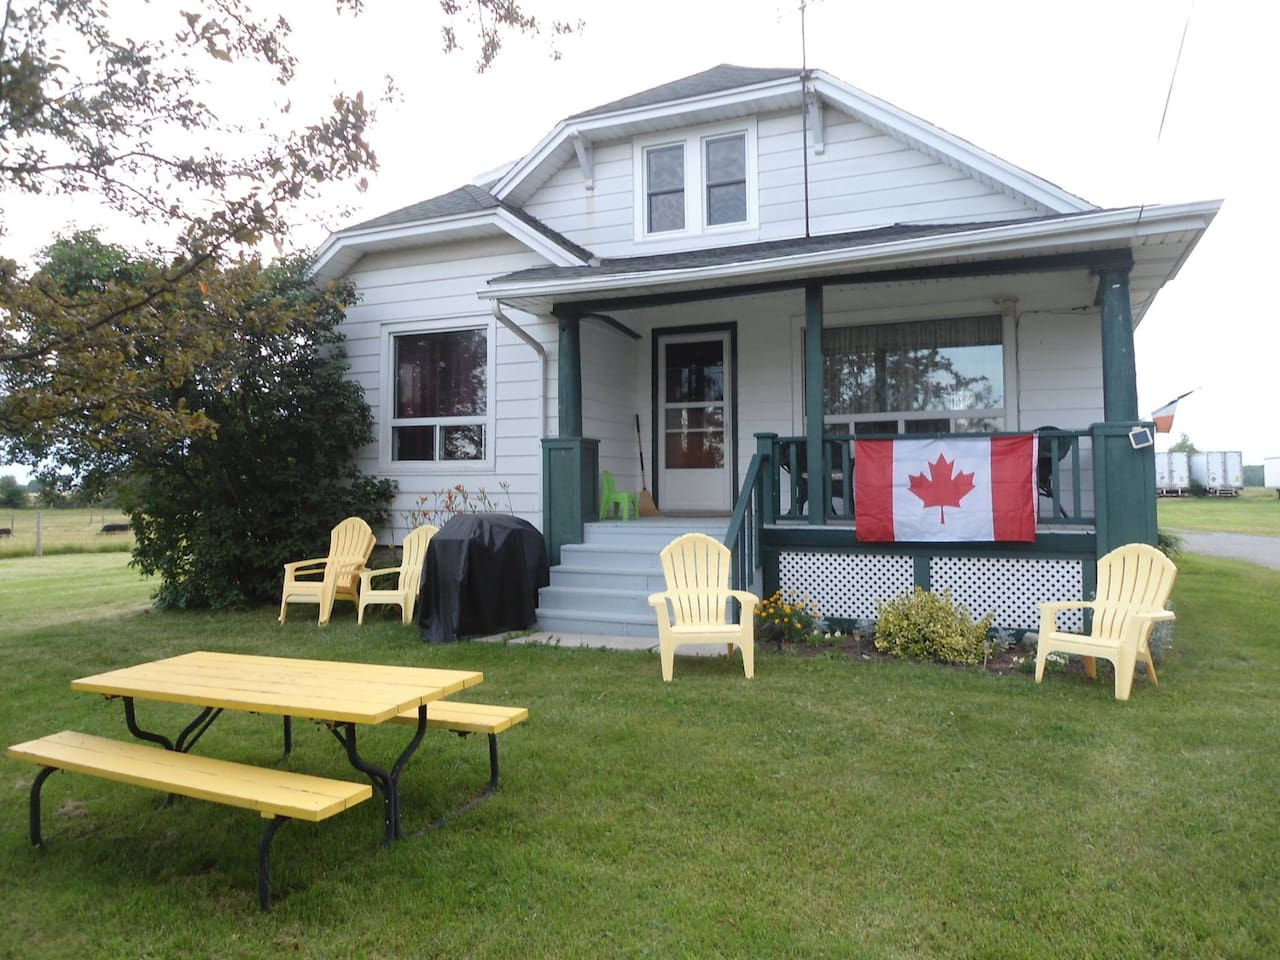 HANNA Farmhouse, Port Maitland, ON. Canada.  $150.00 per night or $875.00 per week during July and August; $125 per night or $675.00 per week during May/June and September/October.